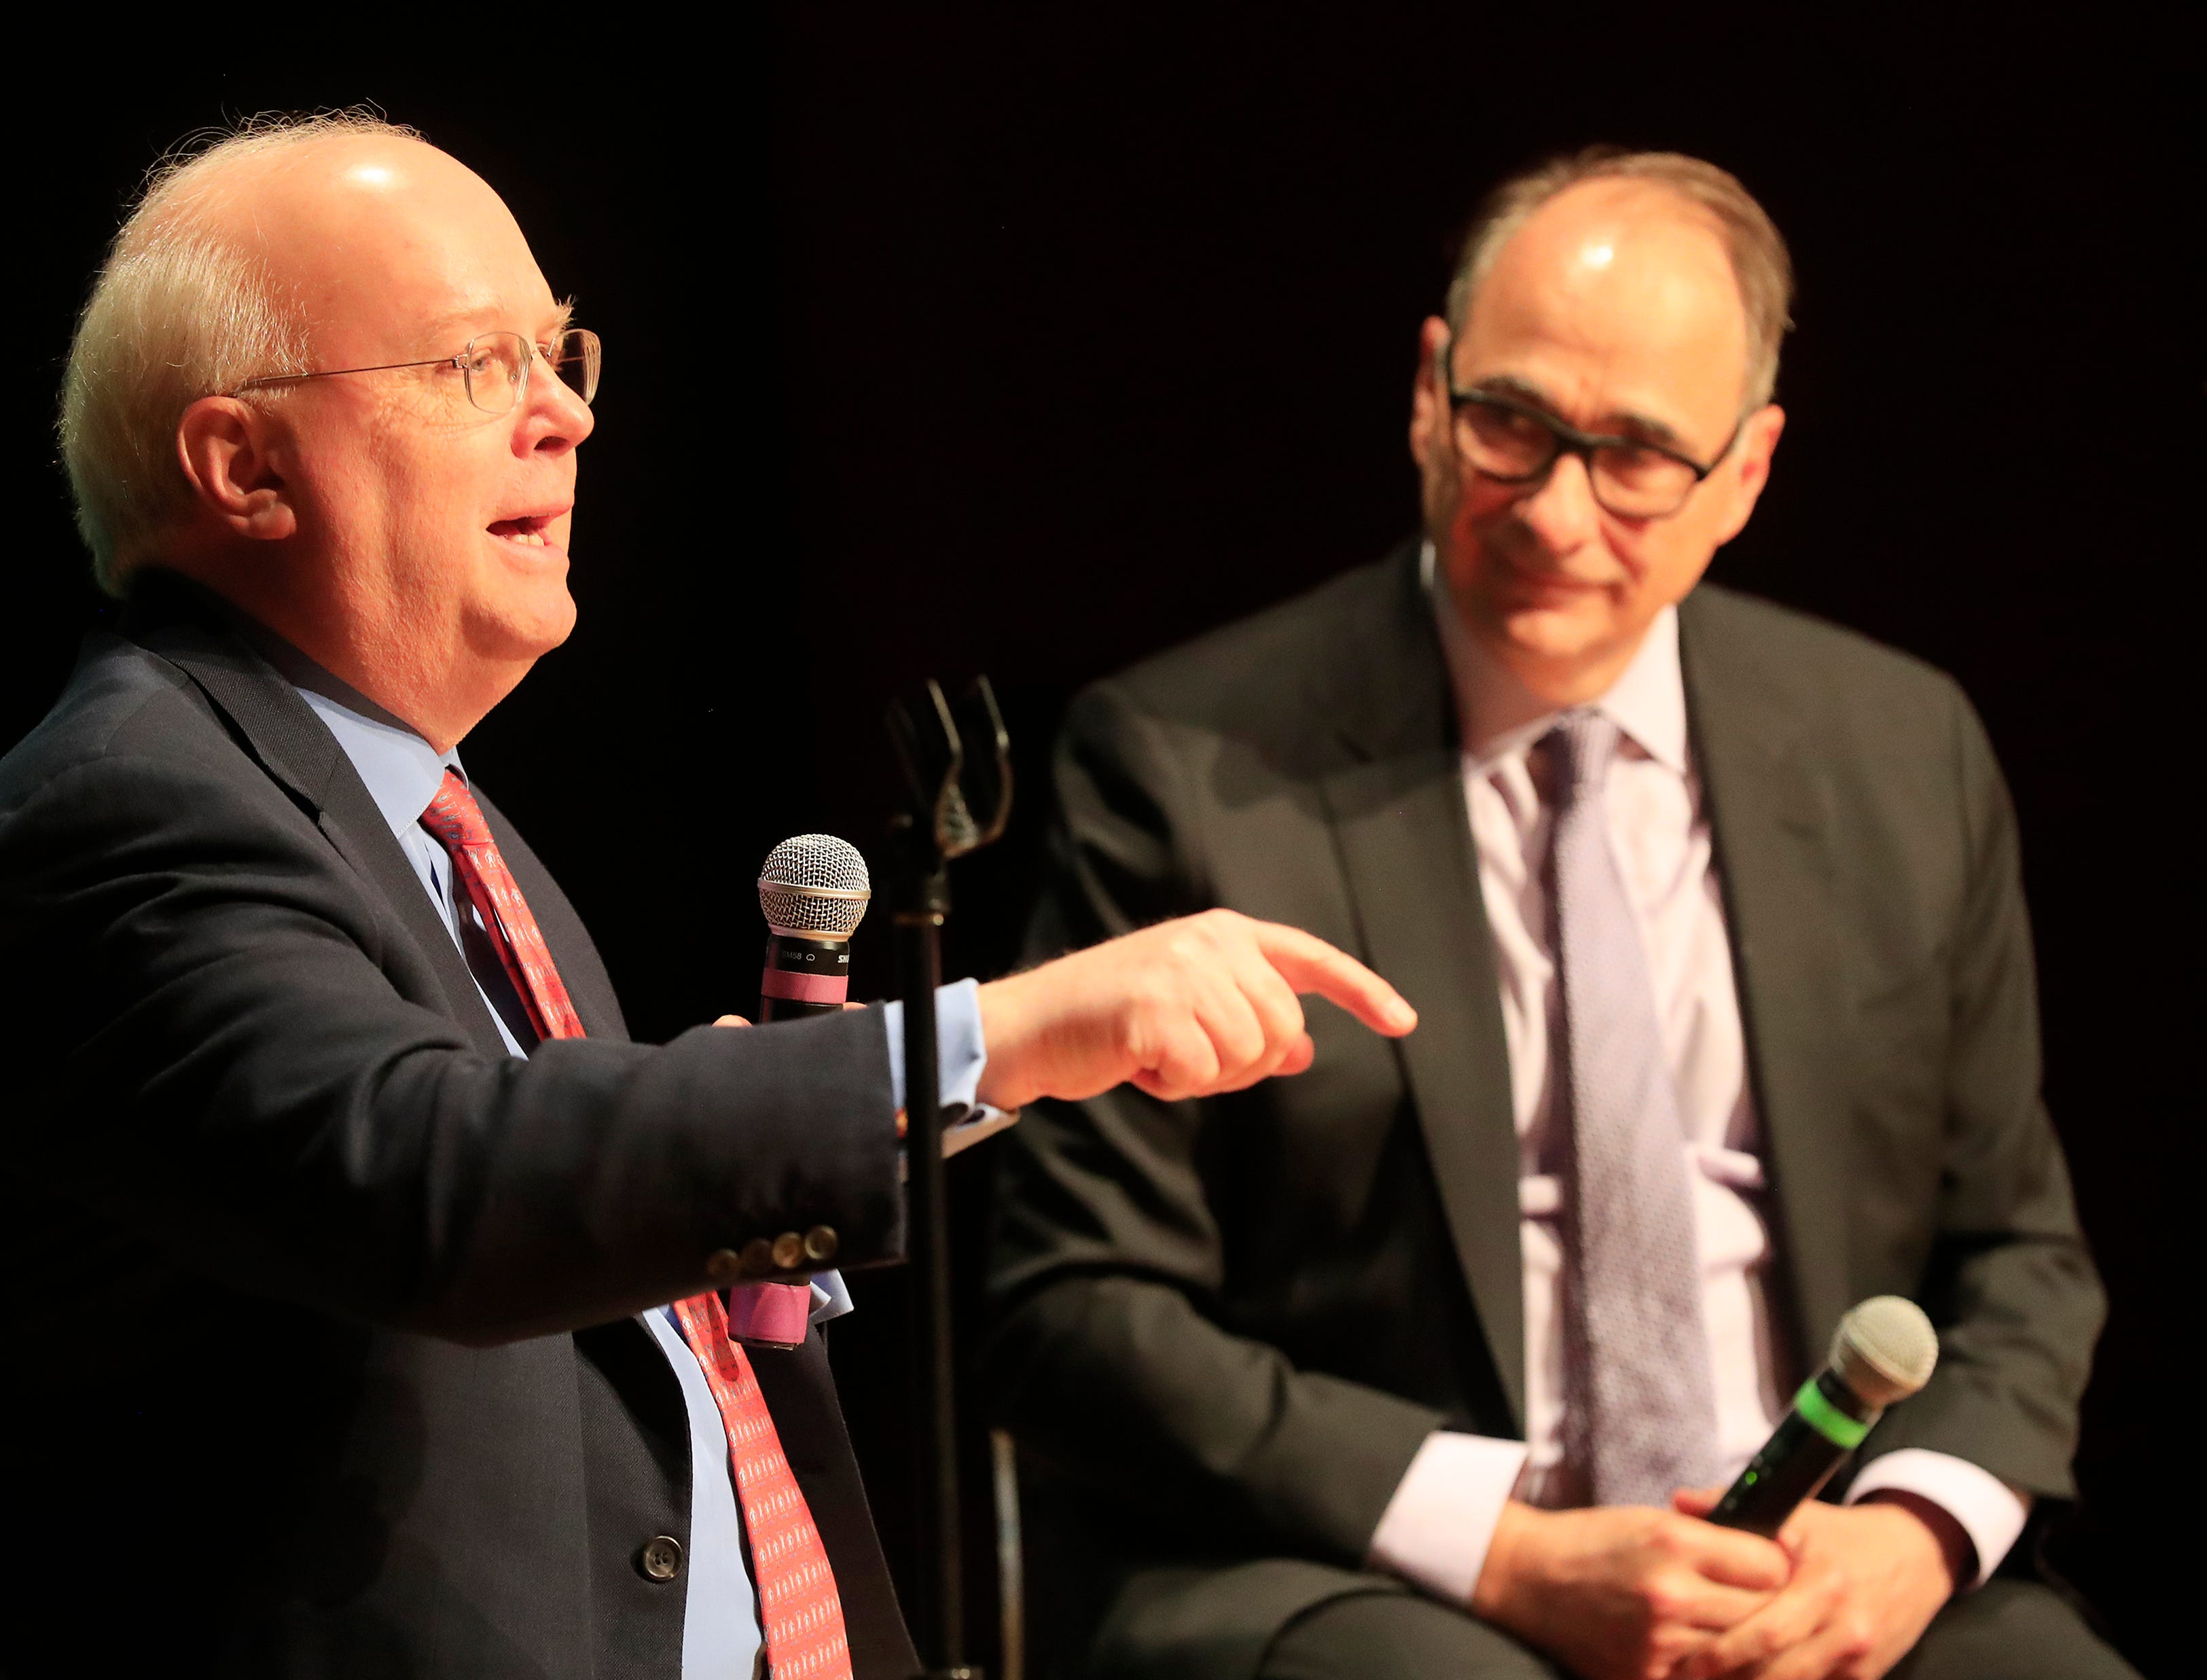 Political consultants Karl Rove (left) and David Axelrod speak to members of the media before their point-counterpoint event at UW-Green Bay on Wednesday, April 3, 2019 in Green Bay, Wis.